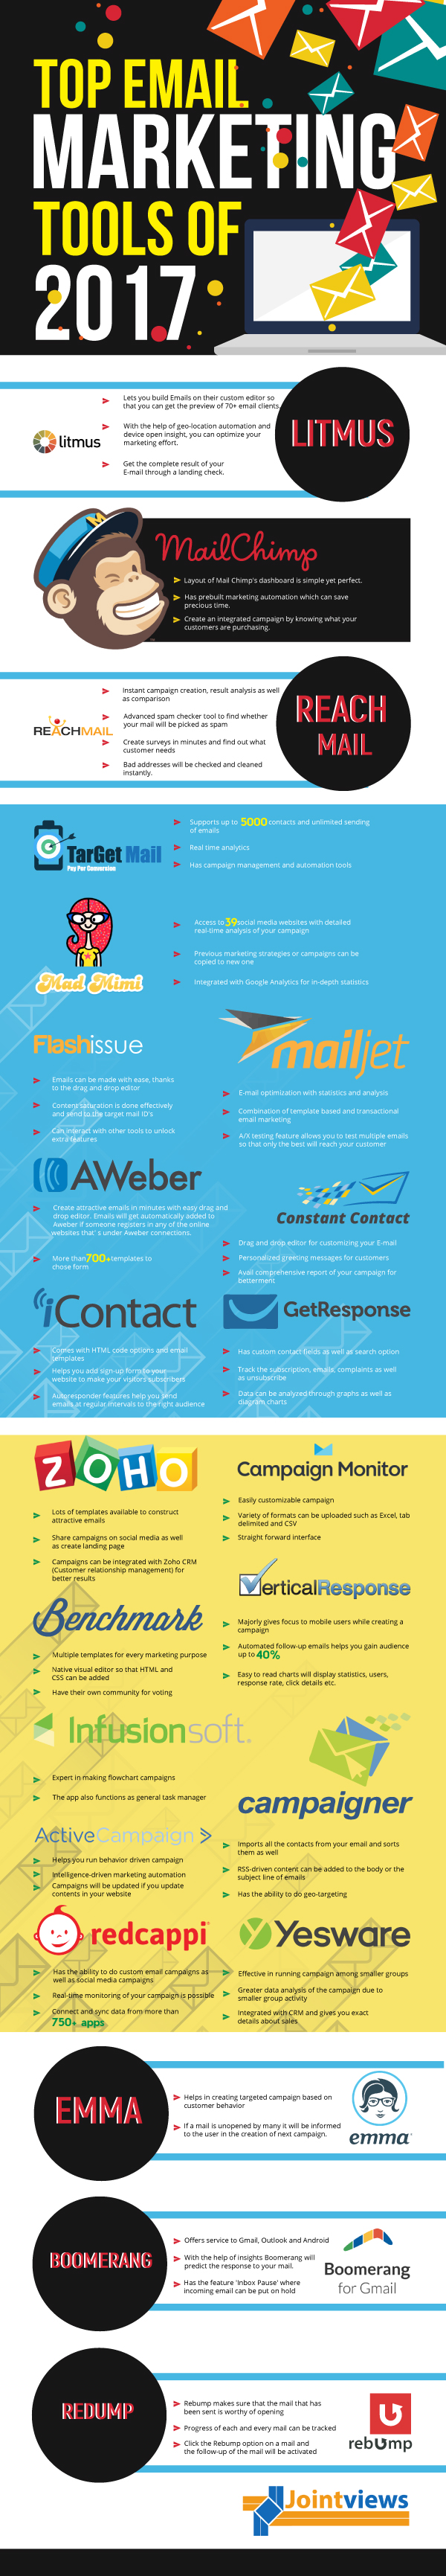 Top-Email-Marketing-tools-of-2017-infographic